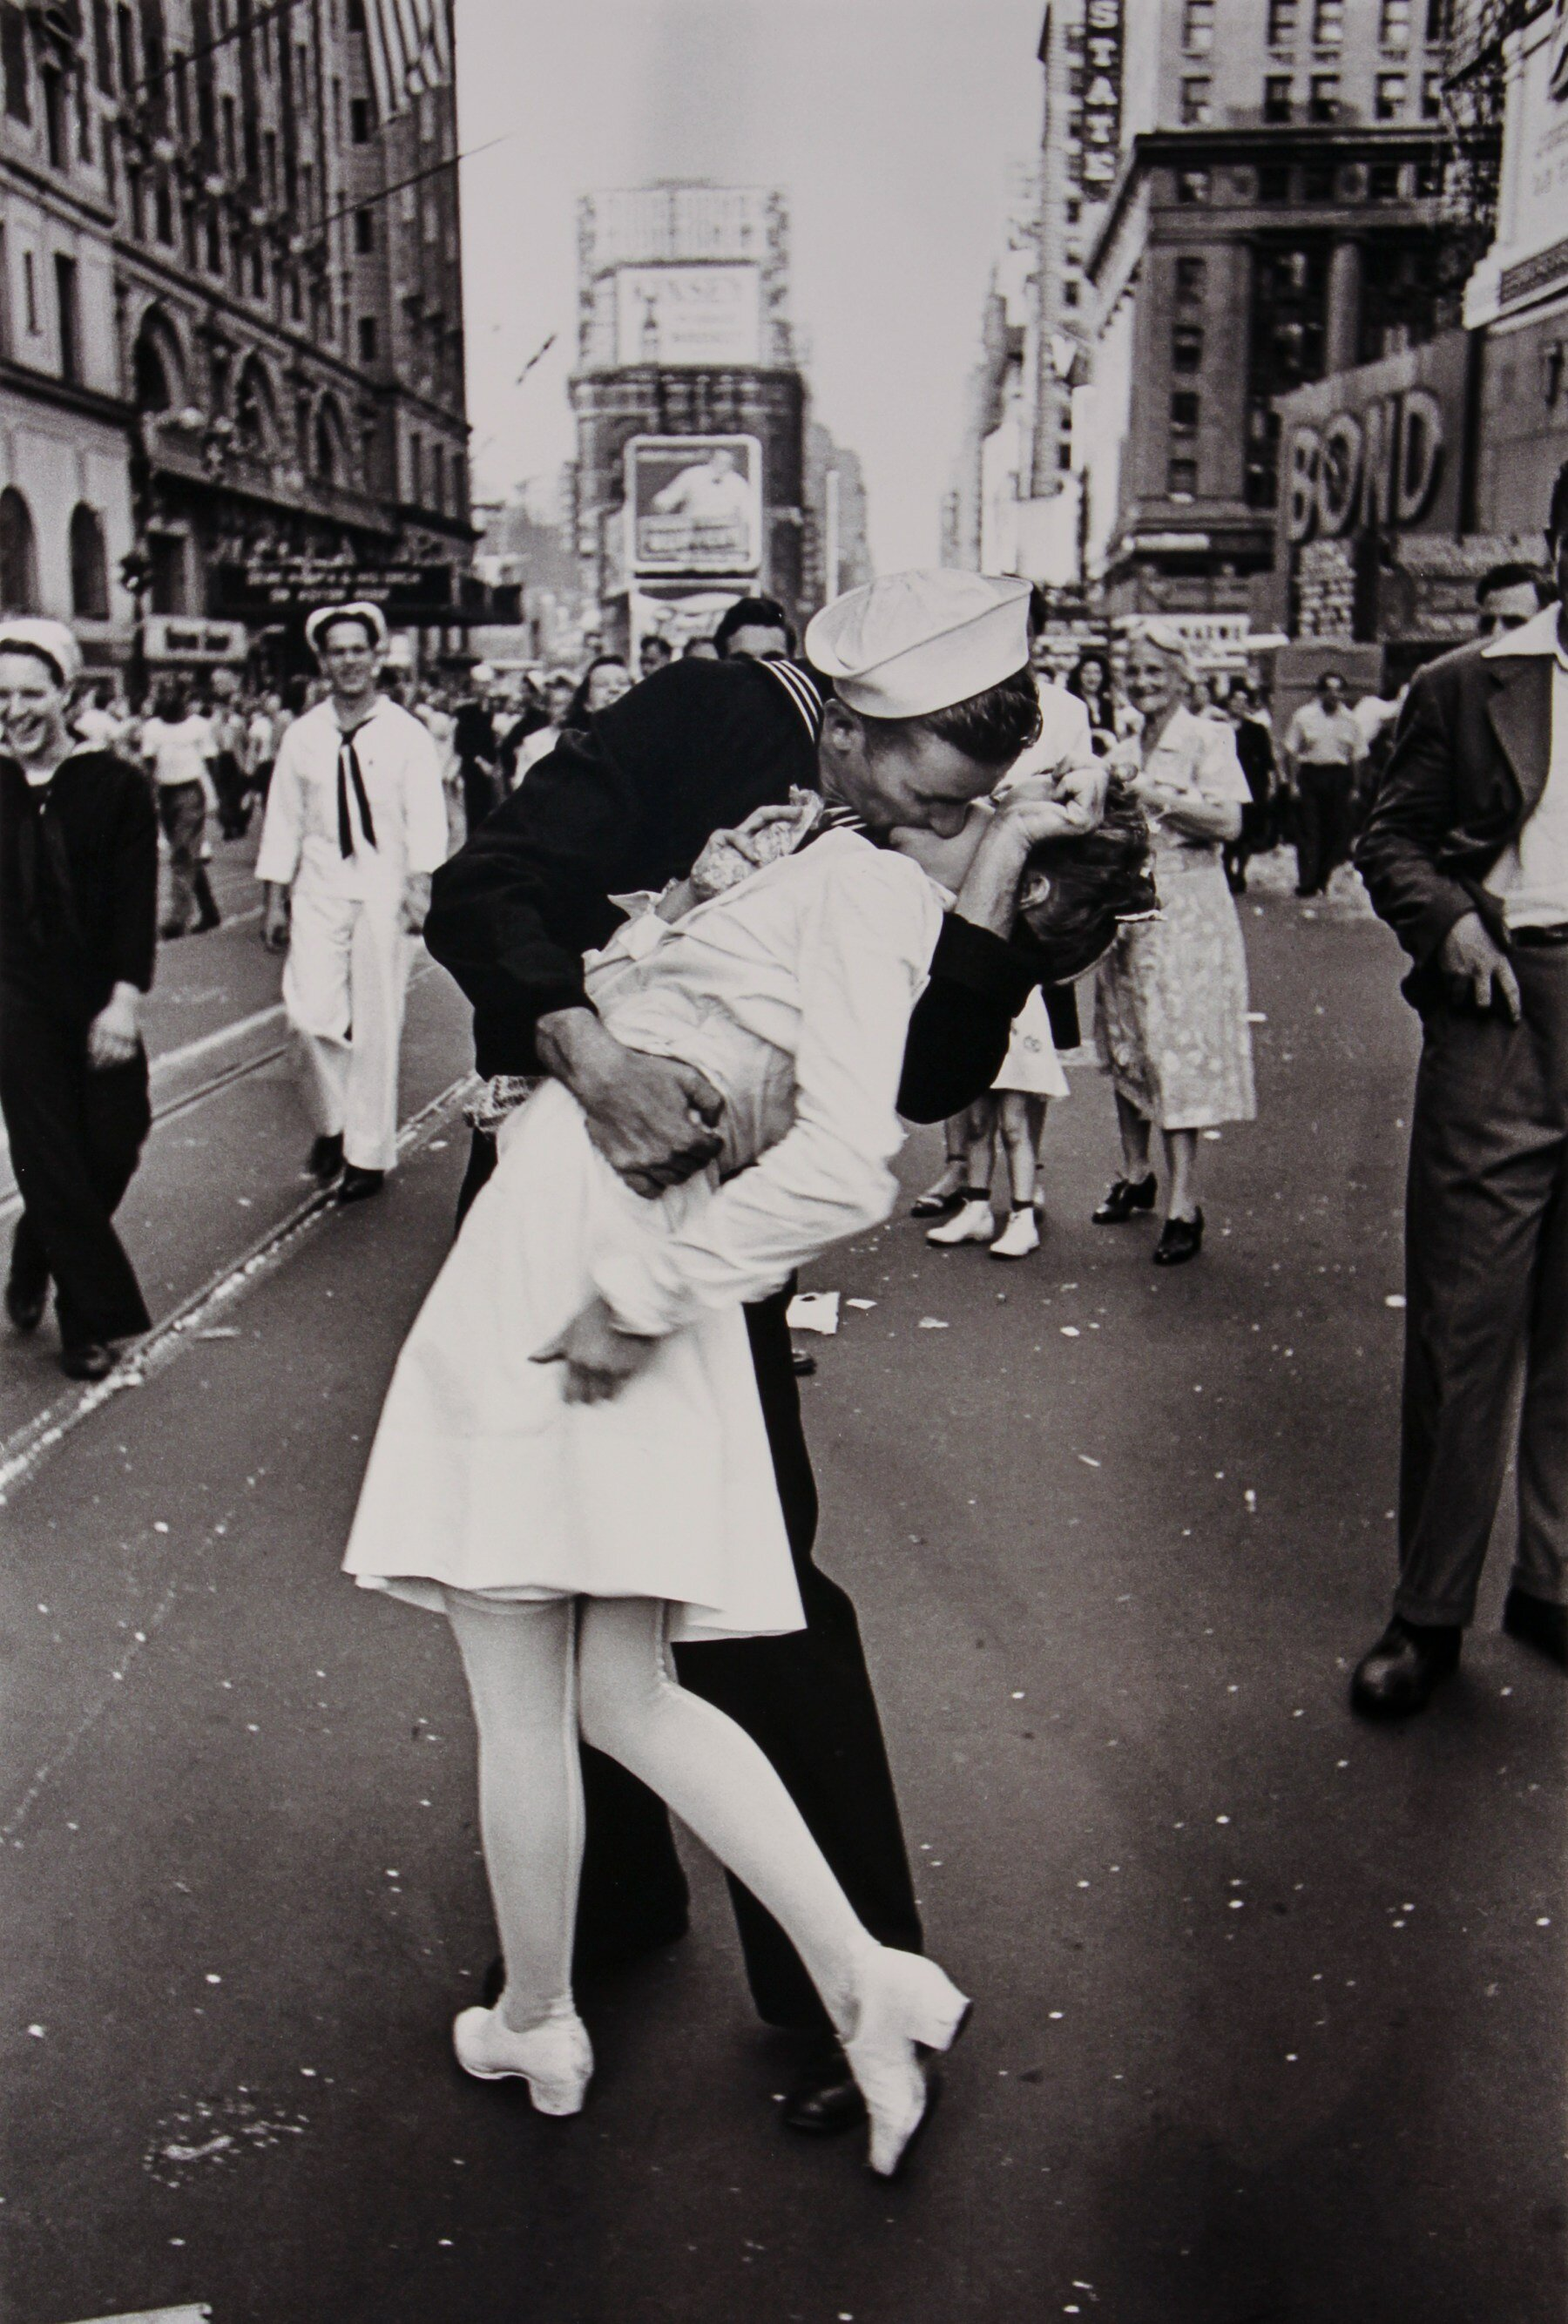 VJ-Day in Times Square - Alfred Eisenstaedt     Source